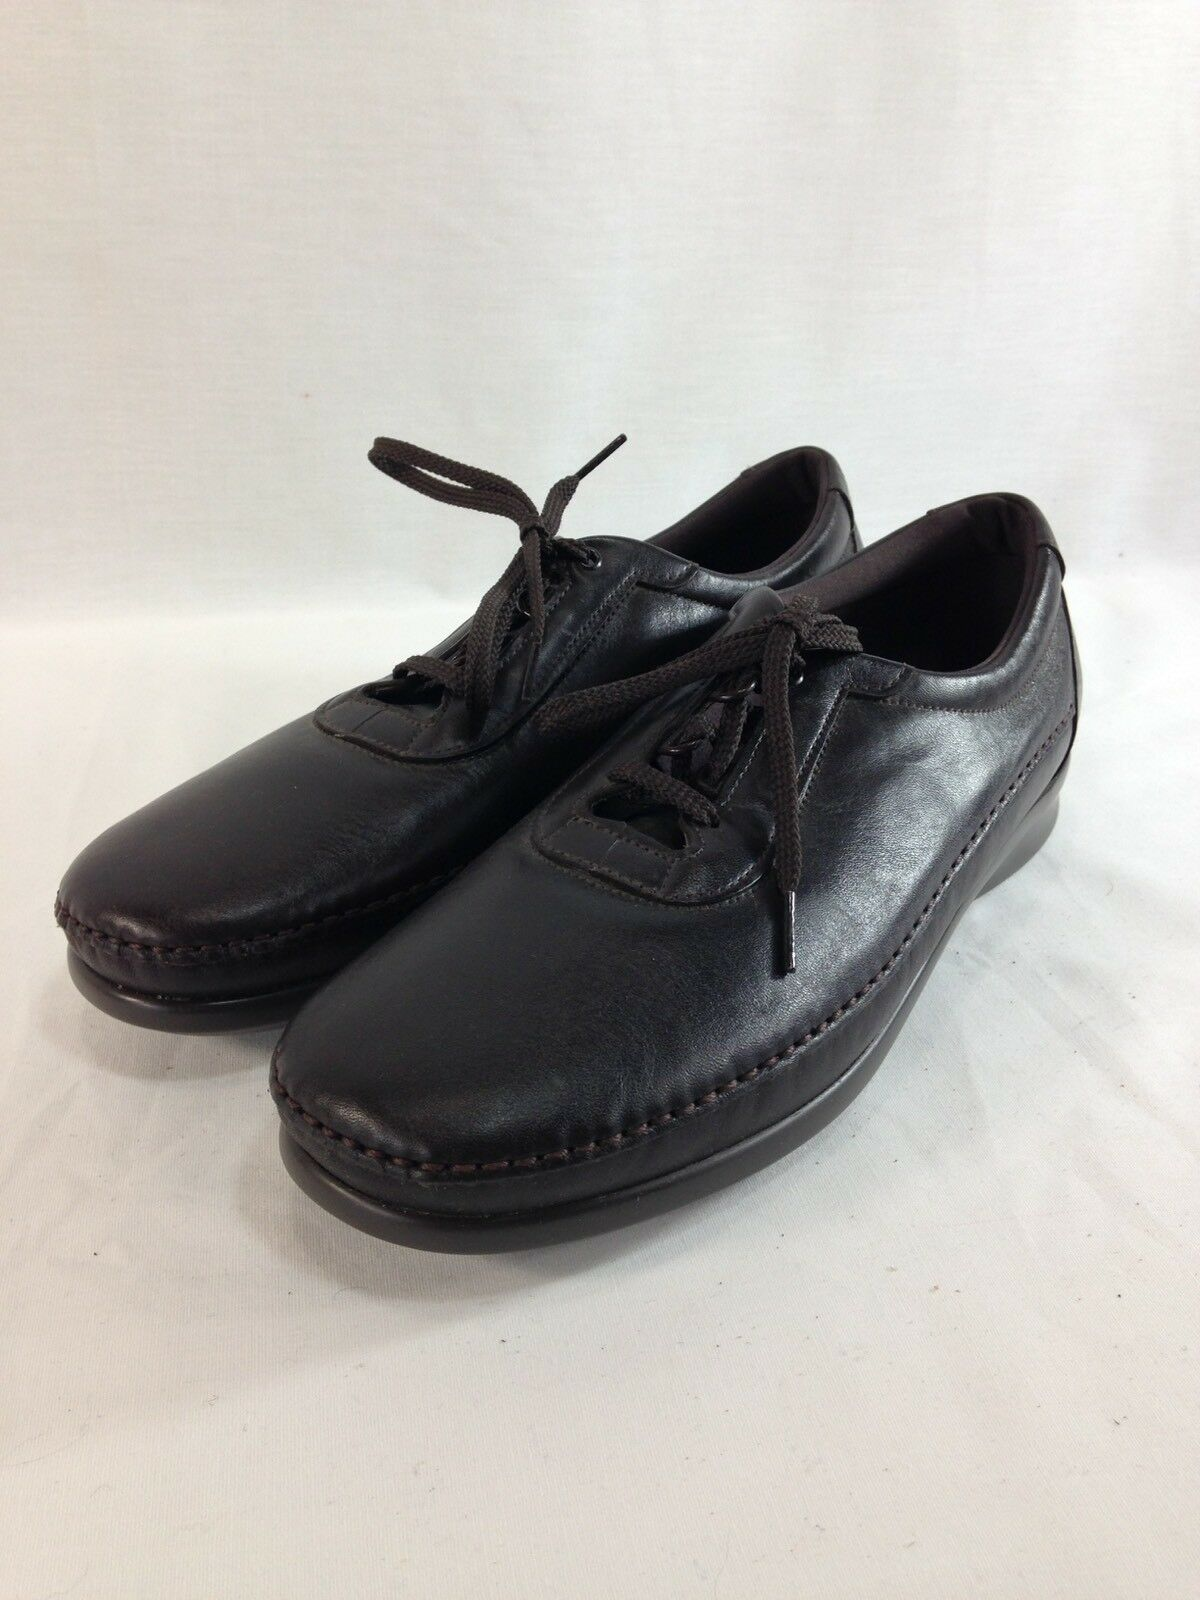 NEW SAS Tripad Comfort shoes Womens 12 N Brown Leather Lace Up Flats Soft Step